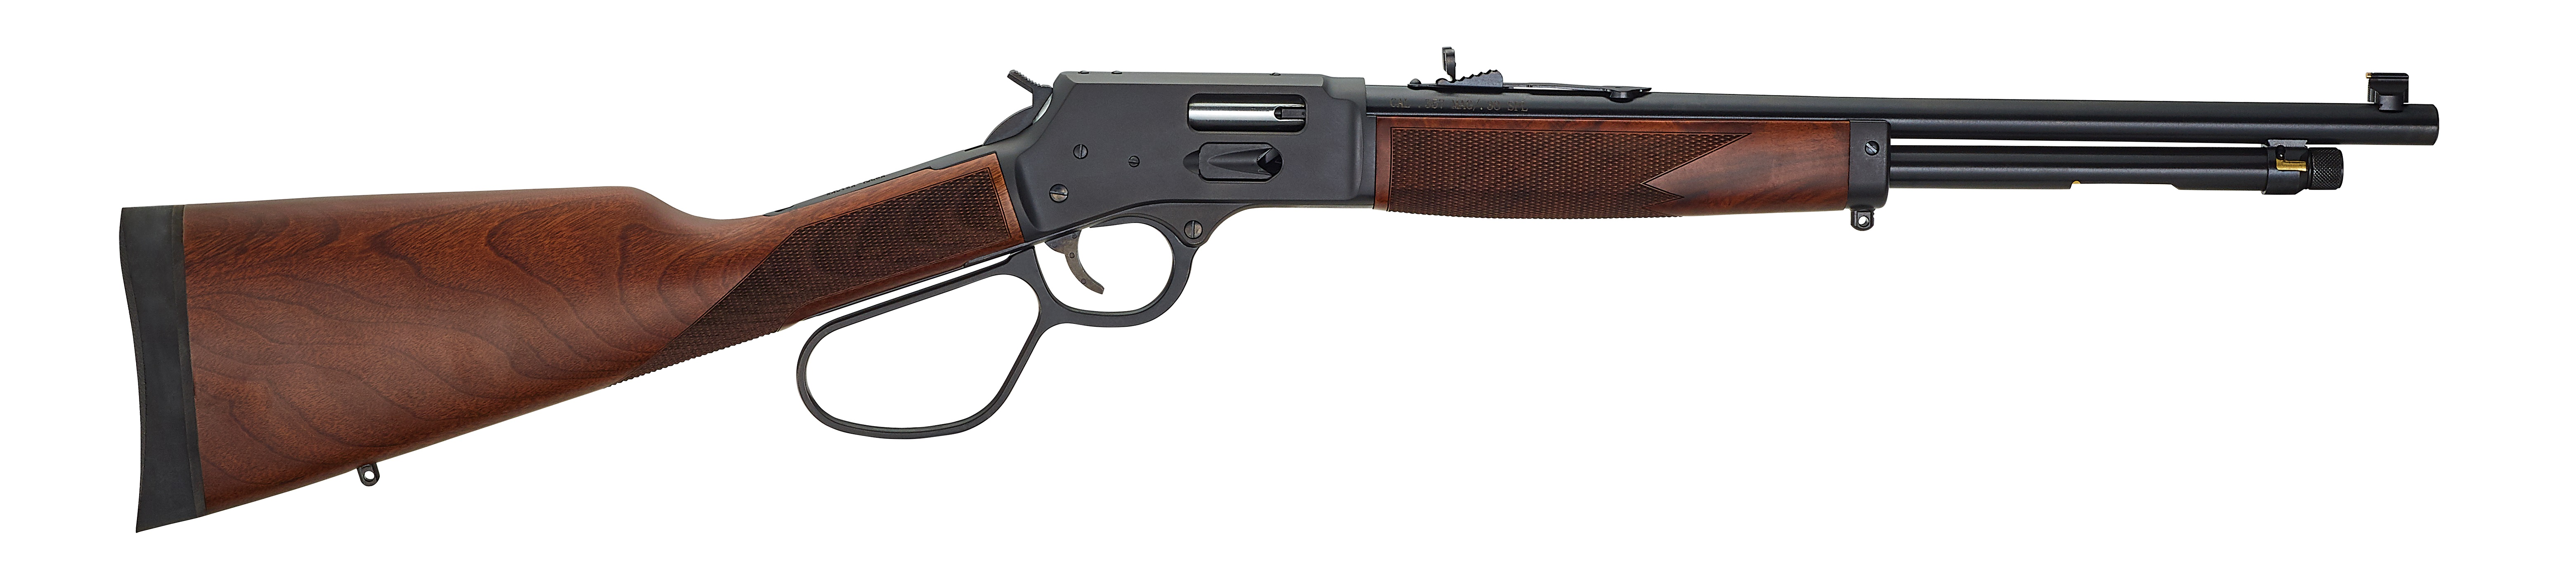 Henry Repeating Arms BIG BOY STEEL CARBINE 45 COLT